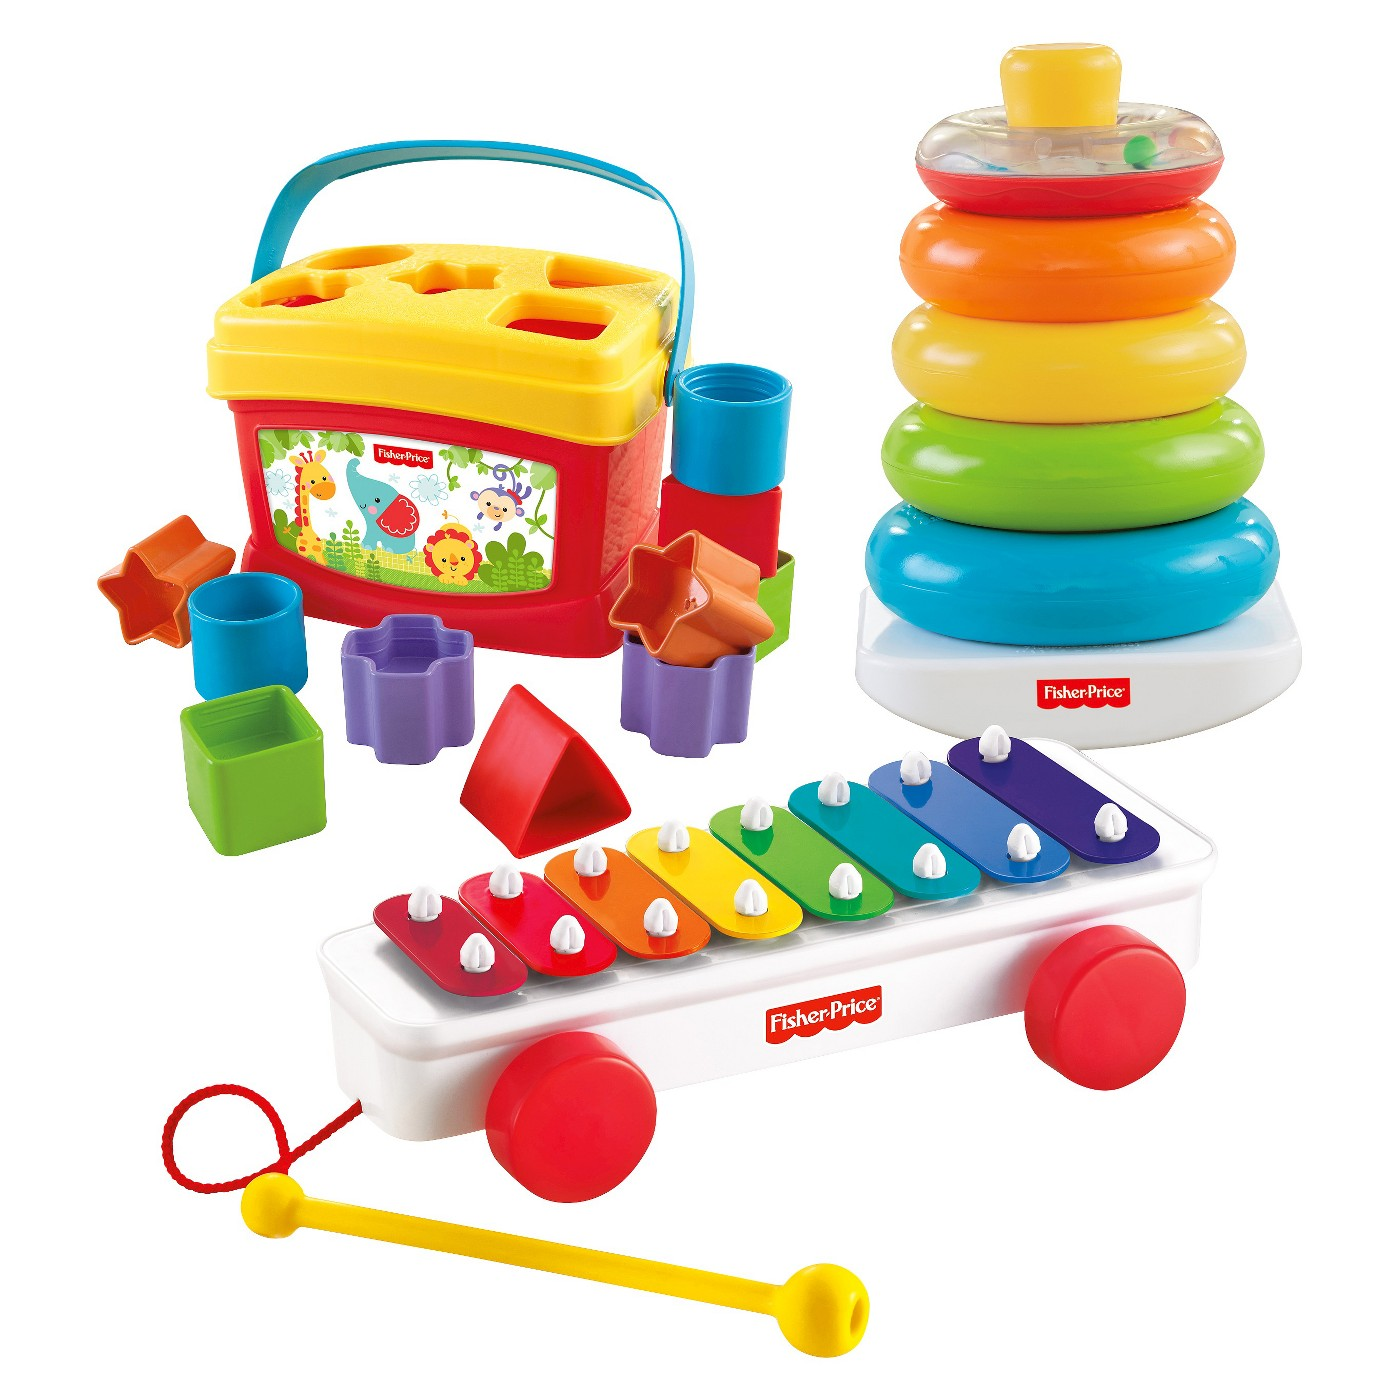 Fisher-Price Classic Infant Trio Gift Set - image 1 of 18